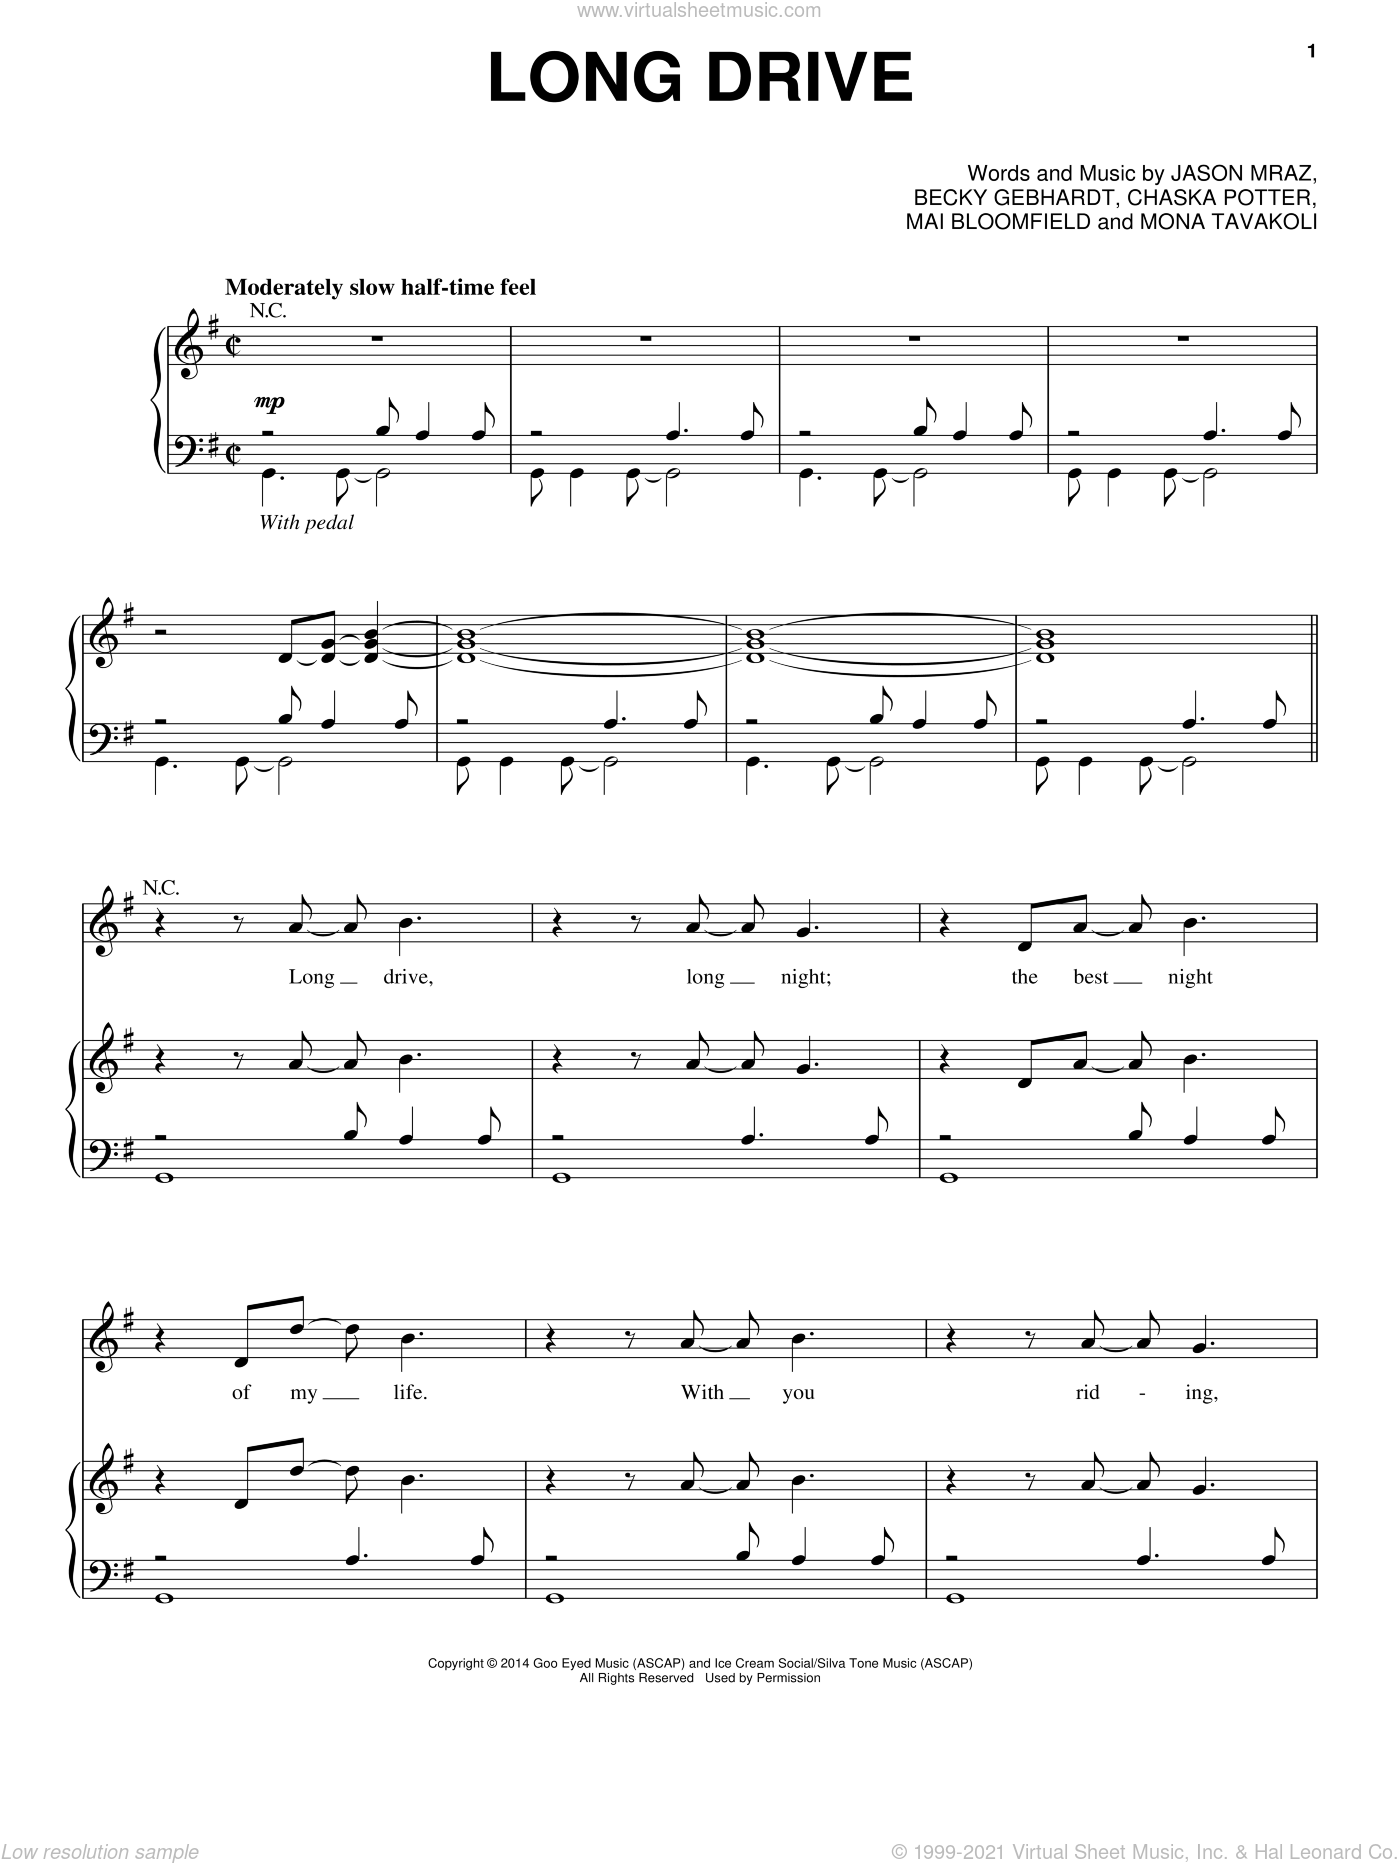 Long Drive sheet music for voice, piano or guitar by Mona Tavakoli and Jason Mraz. Score Image Preview.